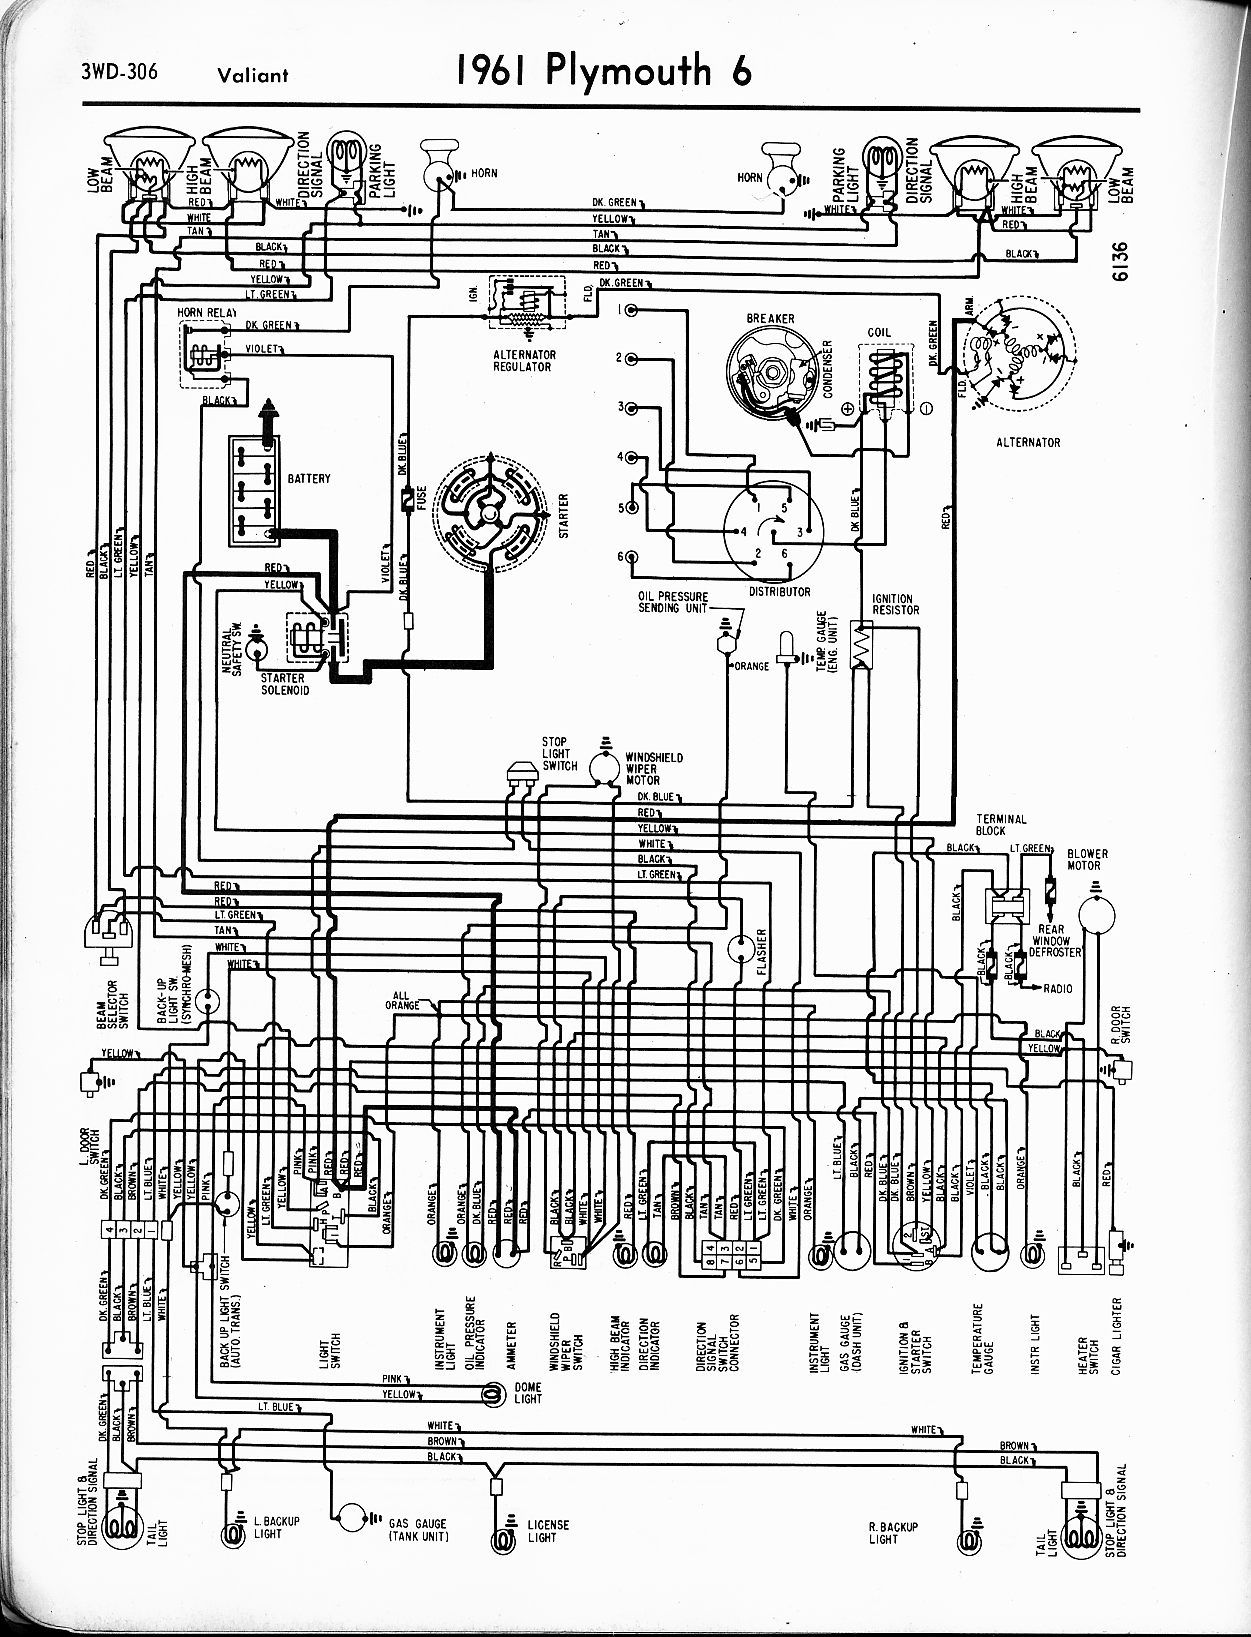 1961 Chrysler Wiring Diagram Sample Sprite Caravan 1956 1965 Plymouth The Old Car Manual Project 1960